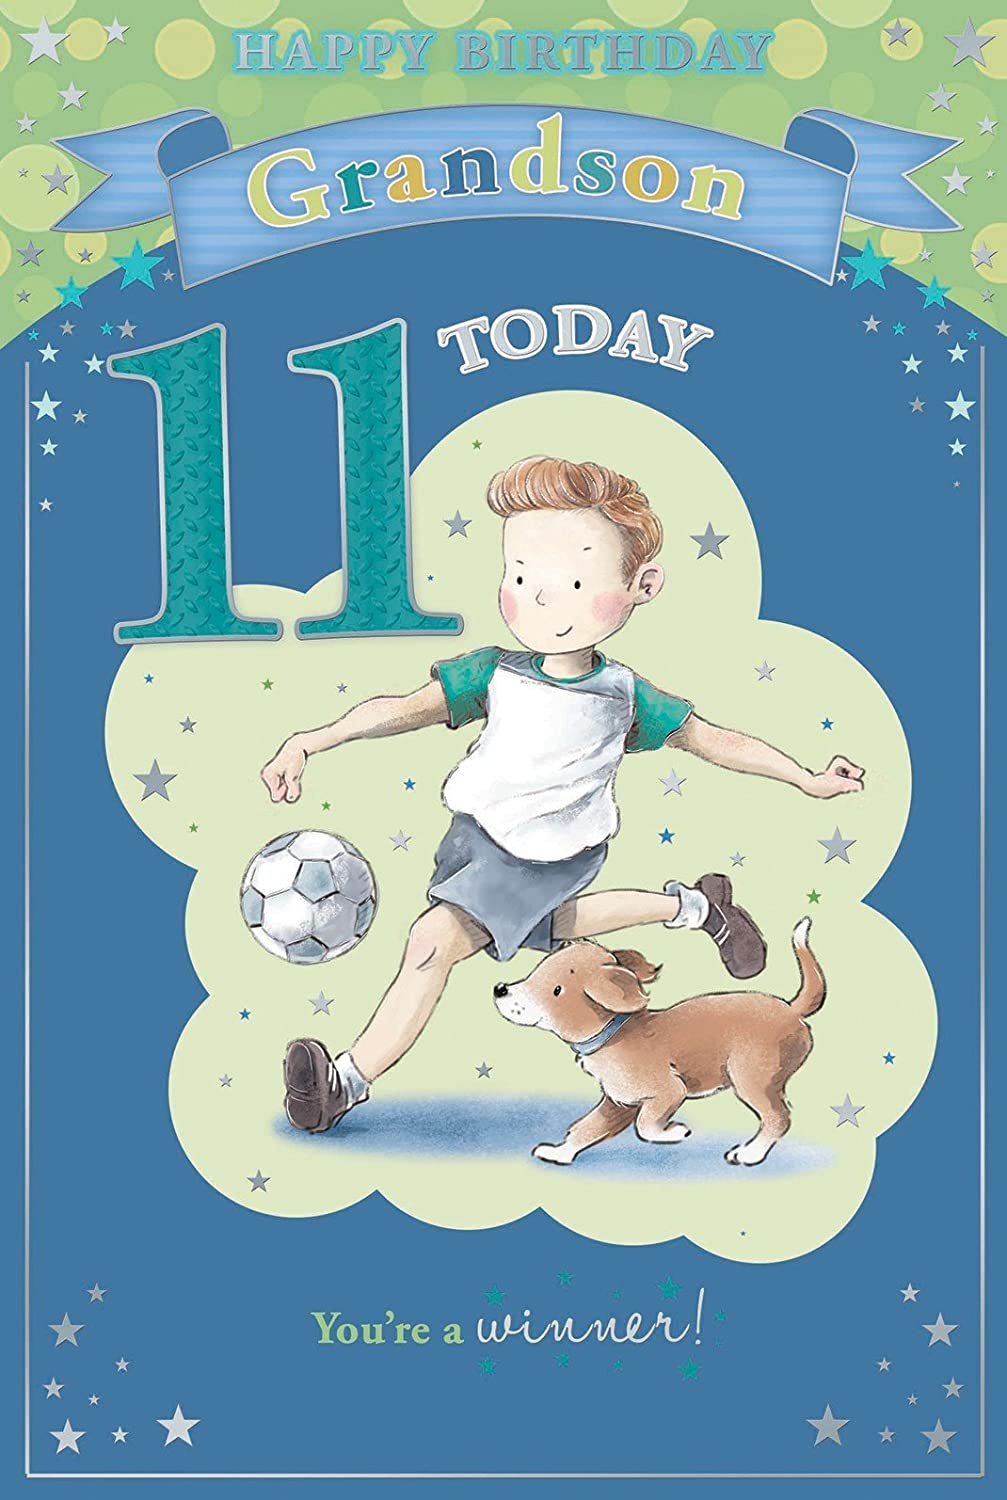 Grandsons 11th Birthday Card 11 Today Boy Dog With Football 9 – 11th Birthday Cards